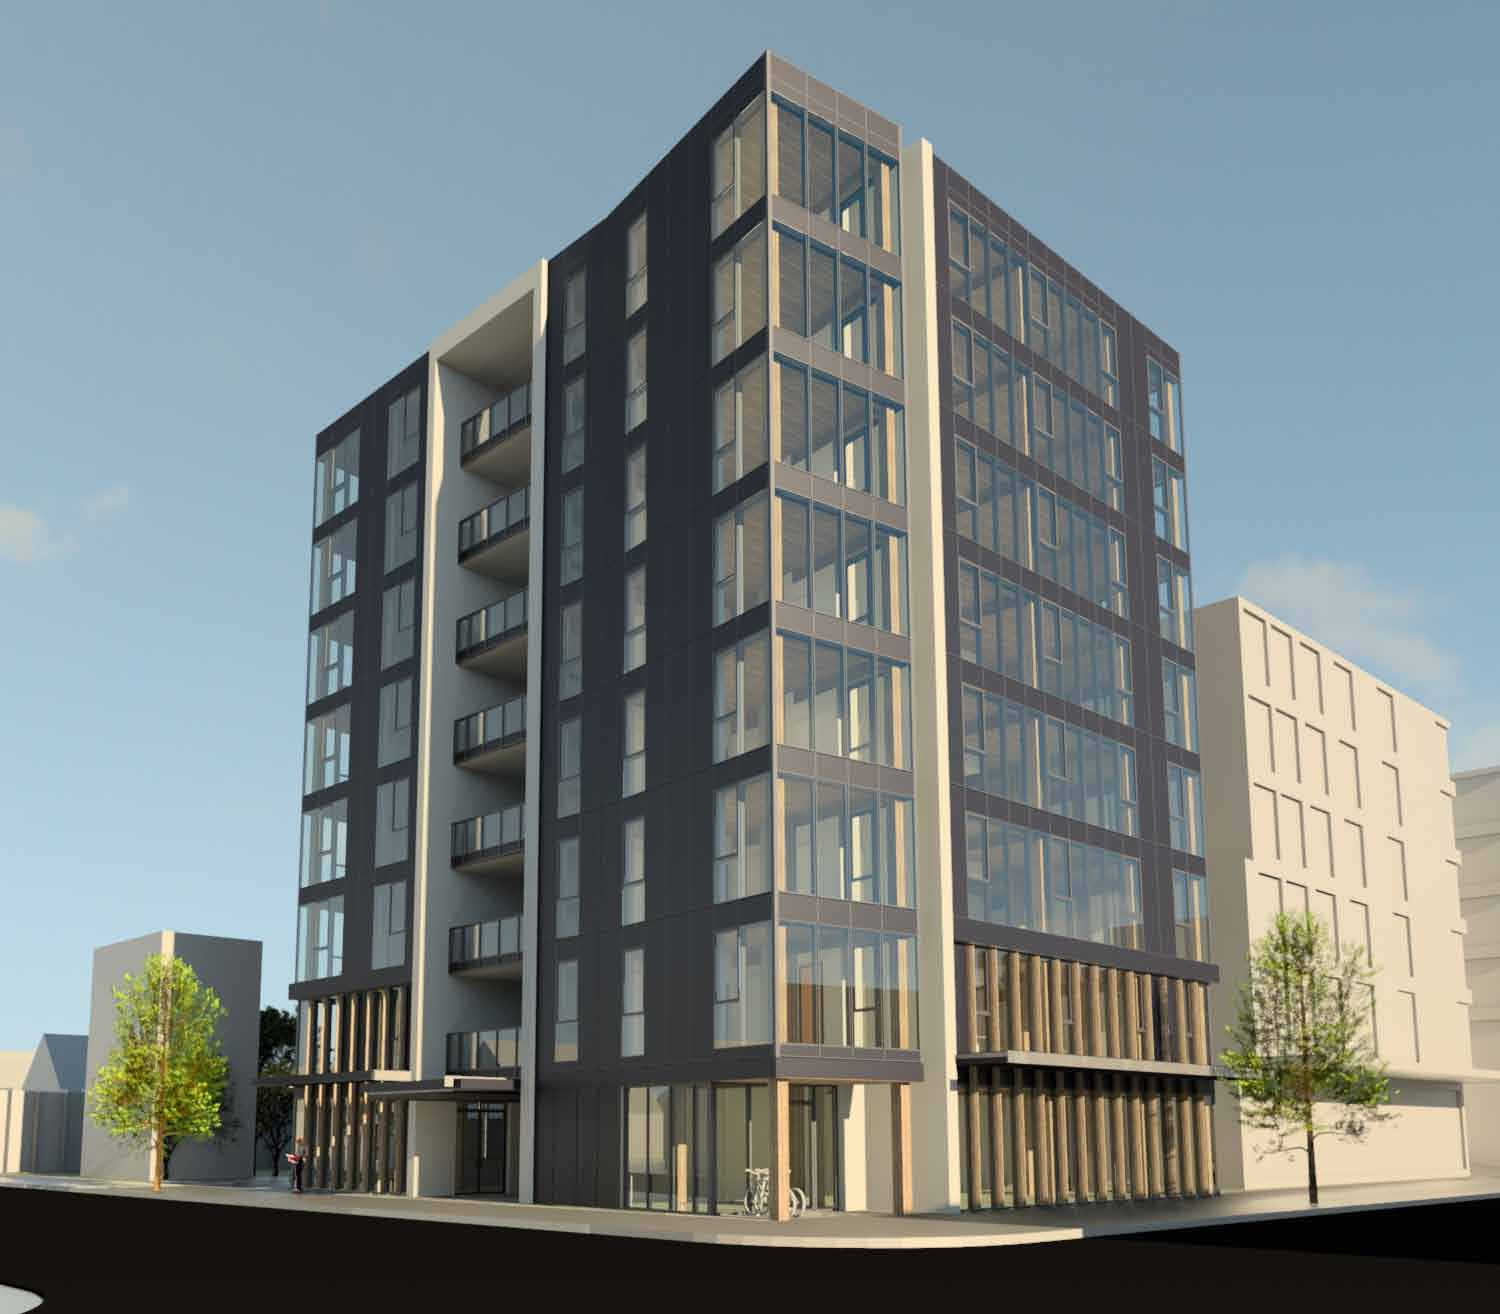 design approved for first tall cross laminated timber building in